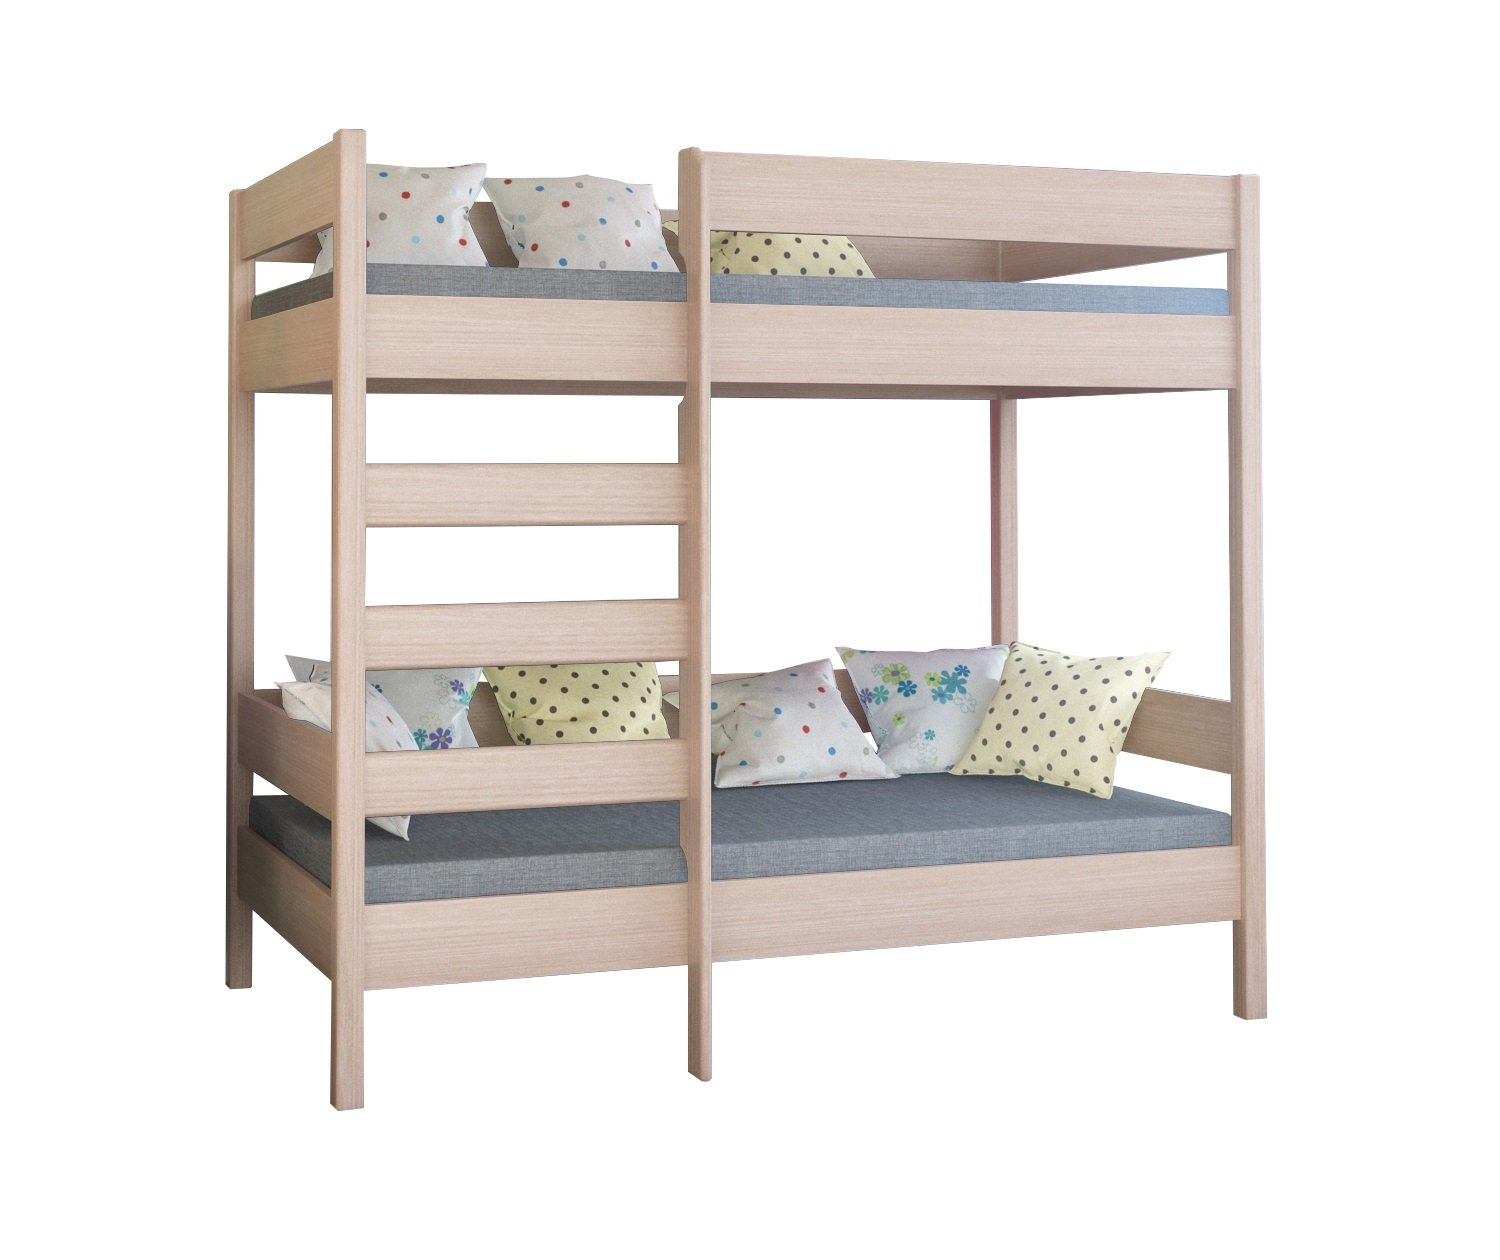 WNM Group Bunk bed Dino high two sleeper front entrance with 2 mattress (160x80x160, Bleached Oak) WNM Group Leg height 160 cm & Bedframe up to 150 kg Legs and ladder made of solid wood 2 Foam mattress included 1